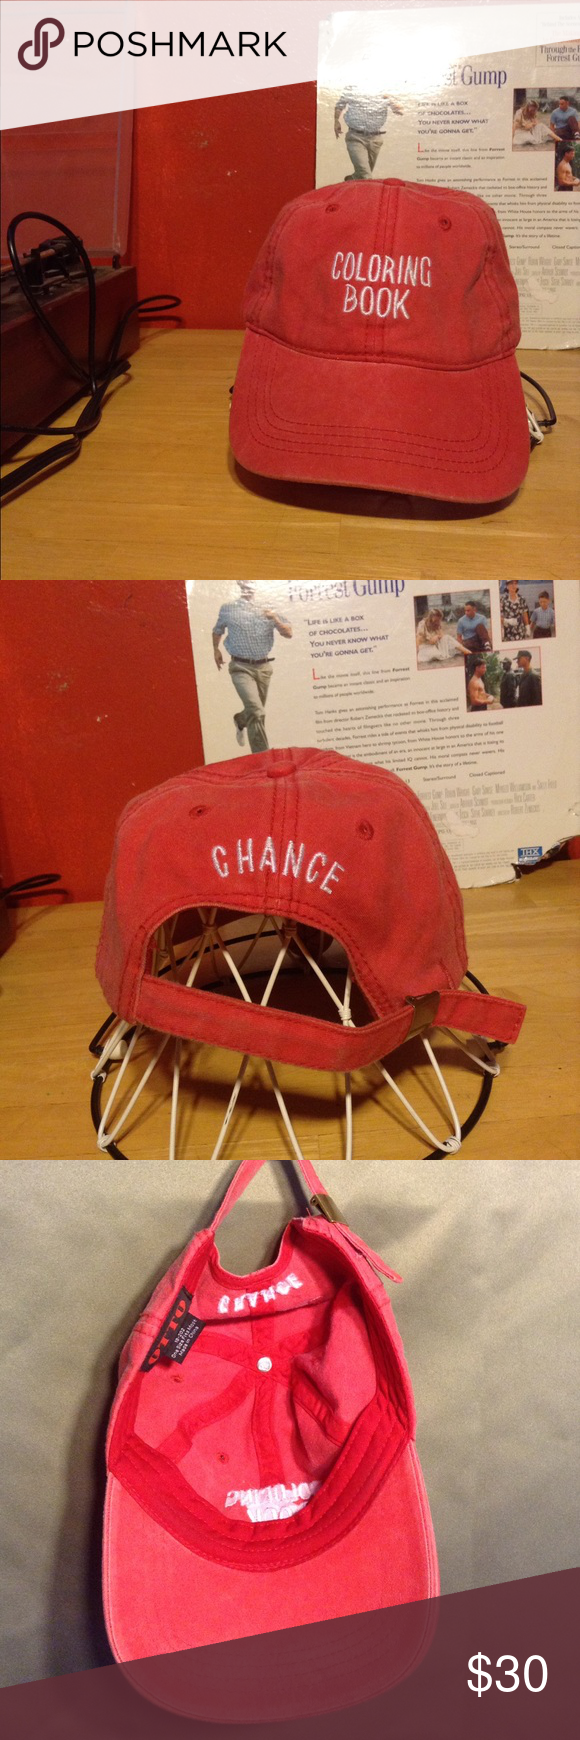 Chance The Rapper Coloring Book Hat Red Coloring Book Hat In Great Condition Feel Free To Ask Me Any Question About T Coloring Books Chance The Rapper Color